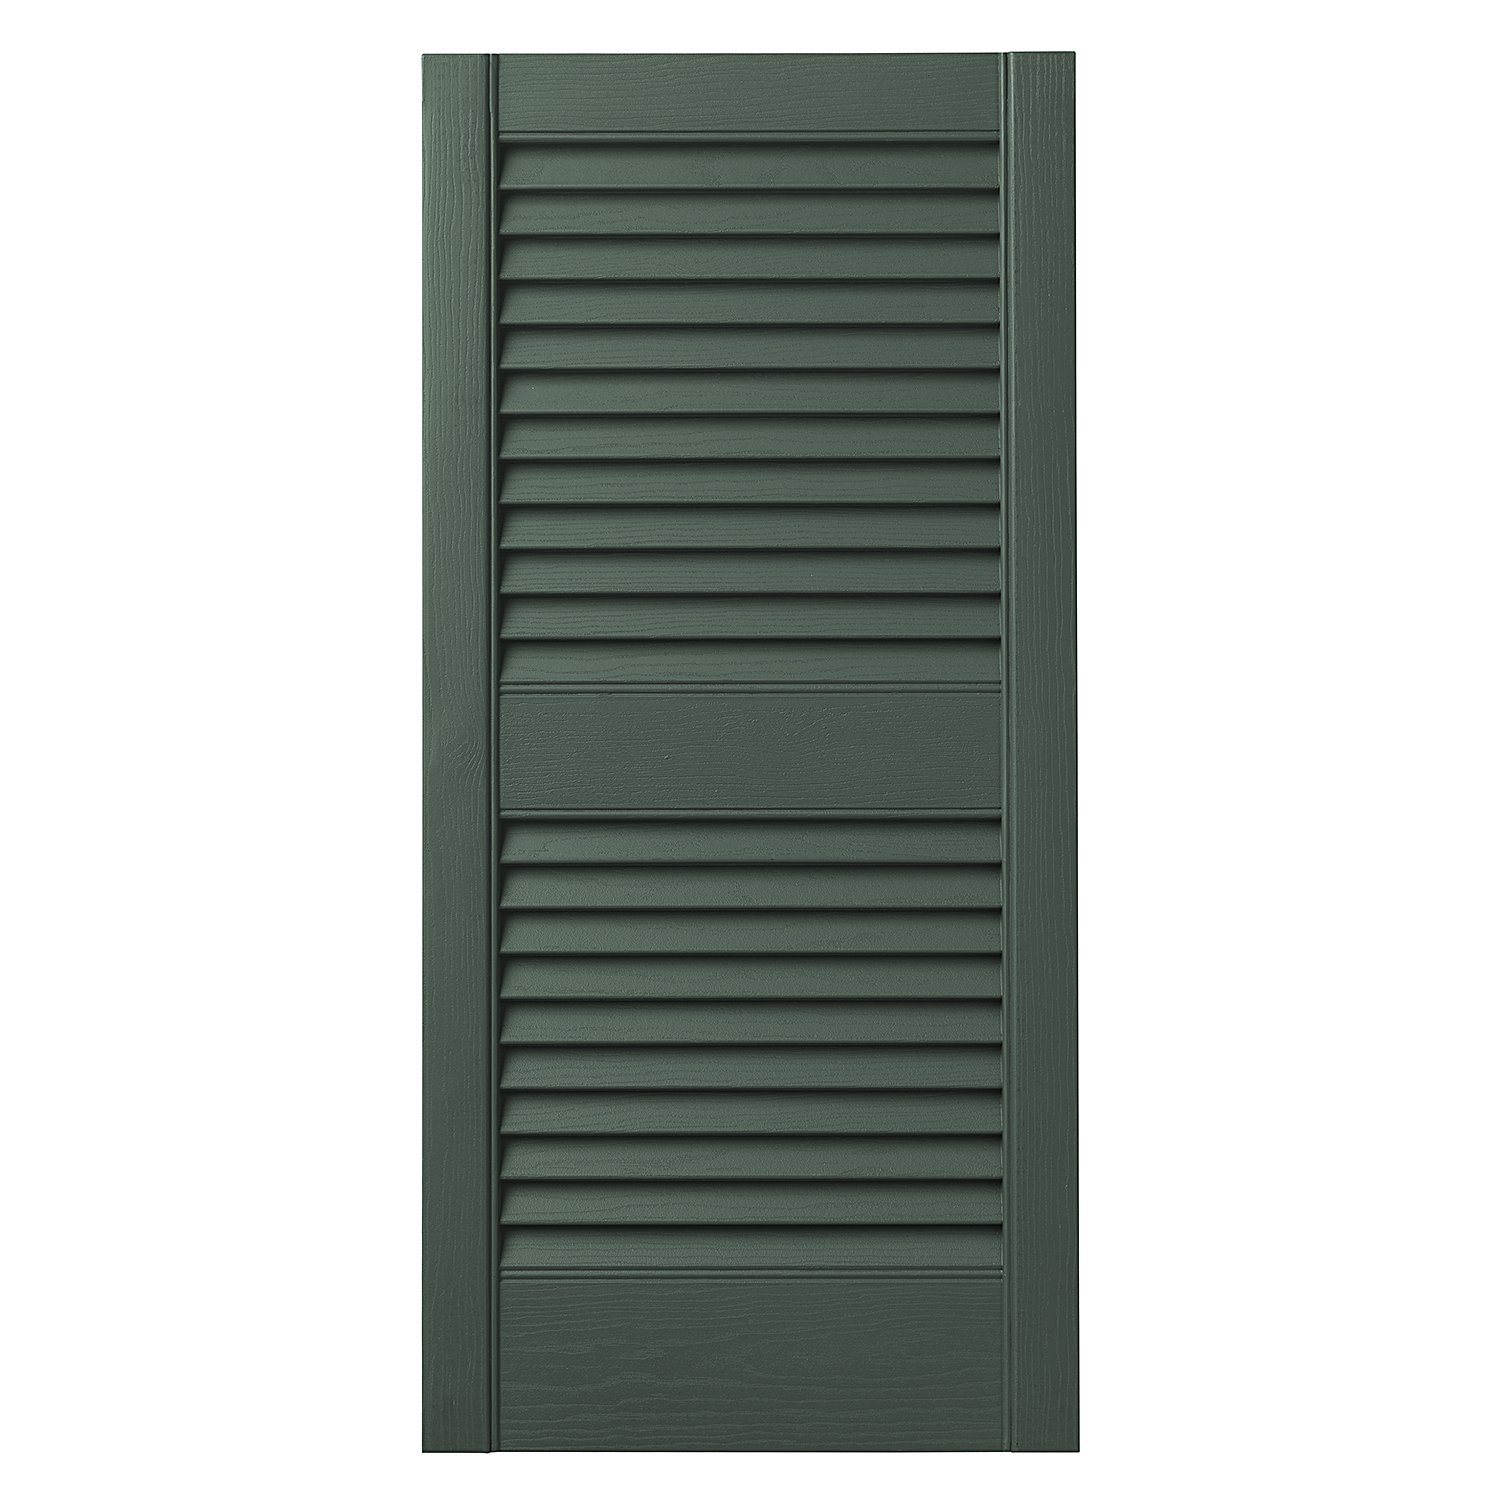 Ply Gem Shutters and Accents VINLV1525 55 Louvered